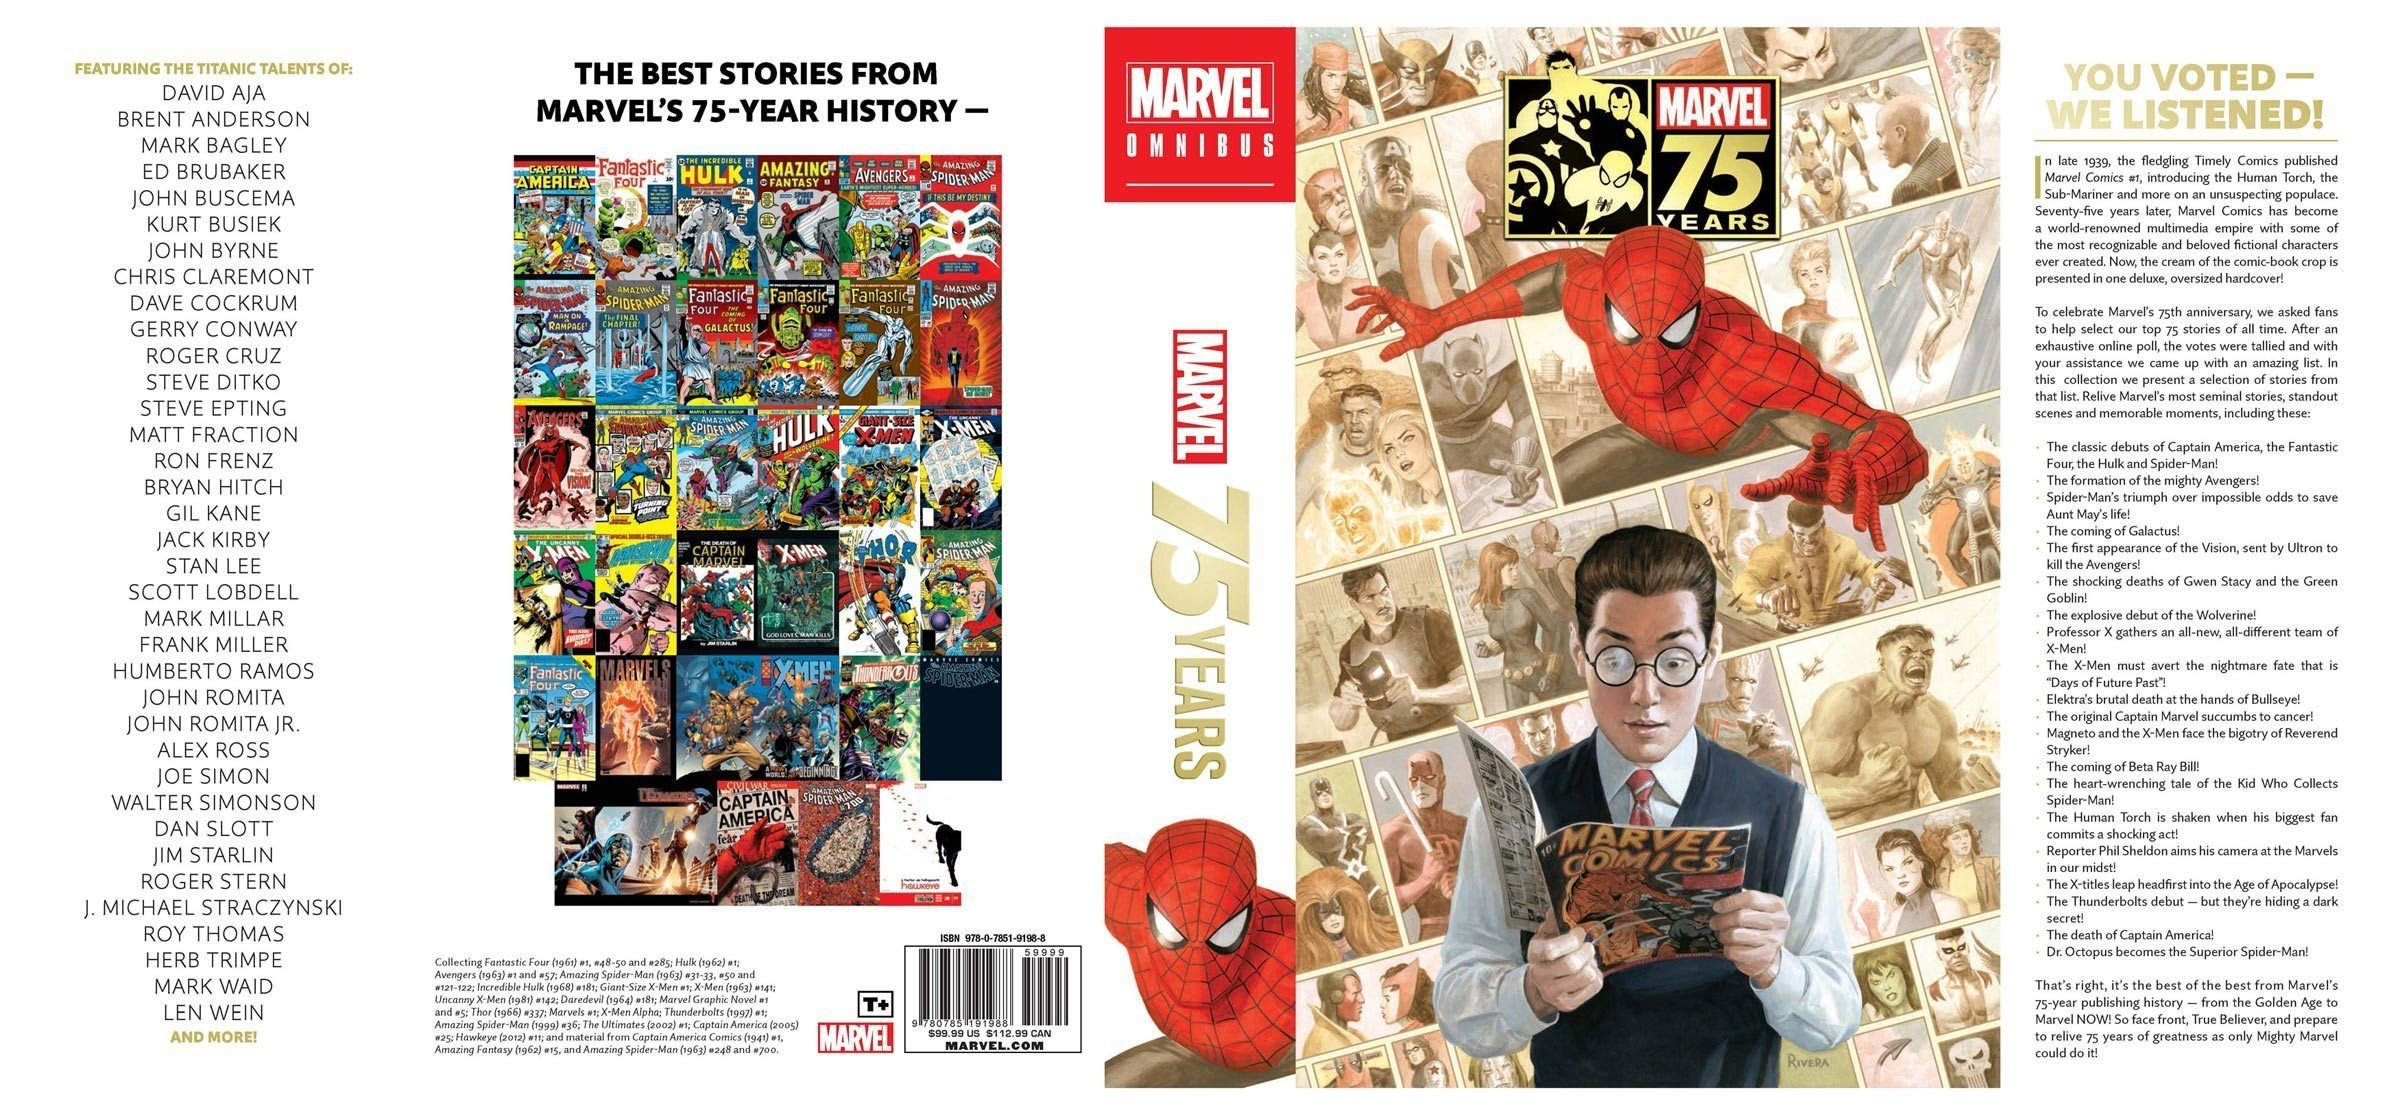 Marvel-75th-Anniversary-Omnibus-Dust-Jacket-09a0e